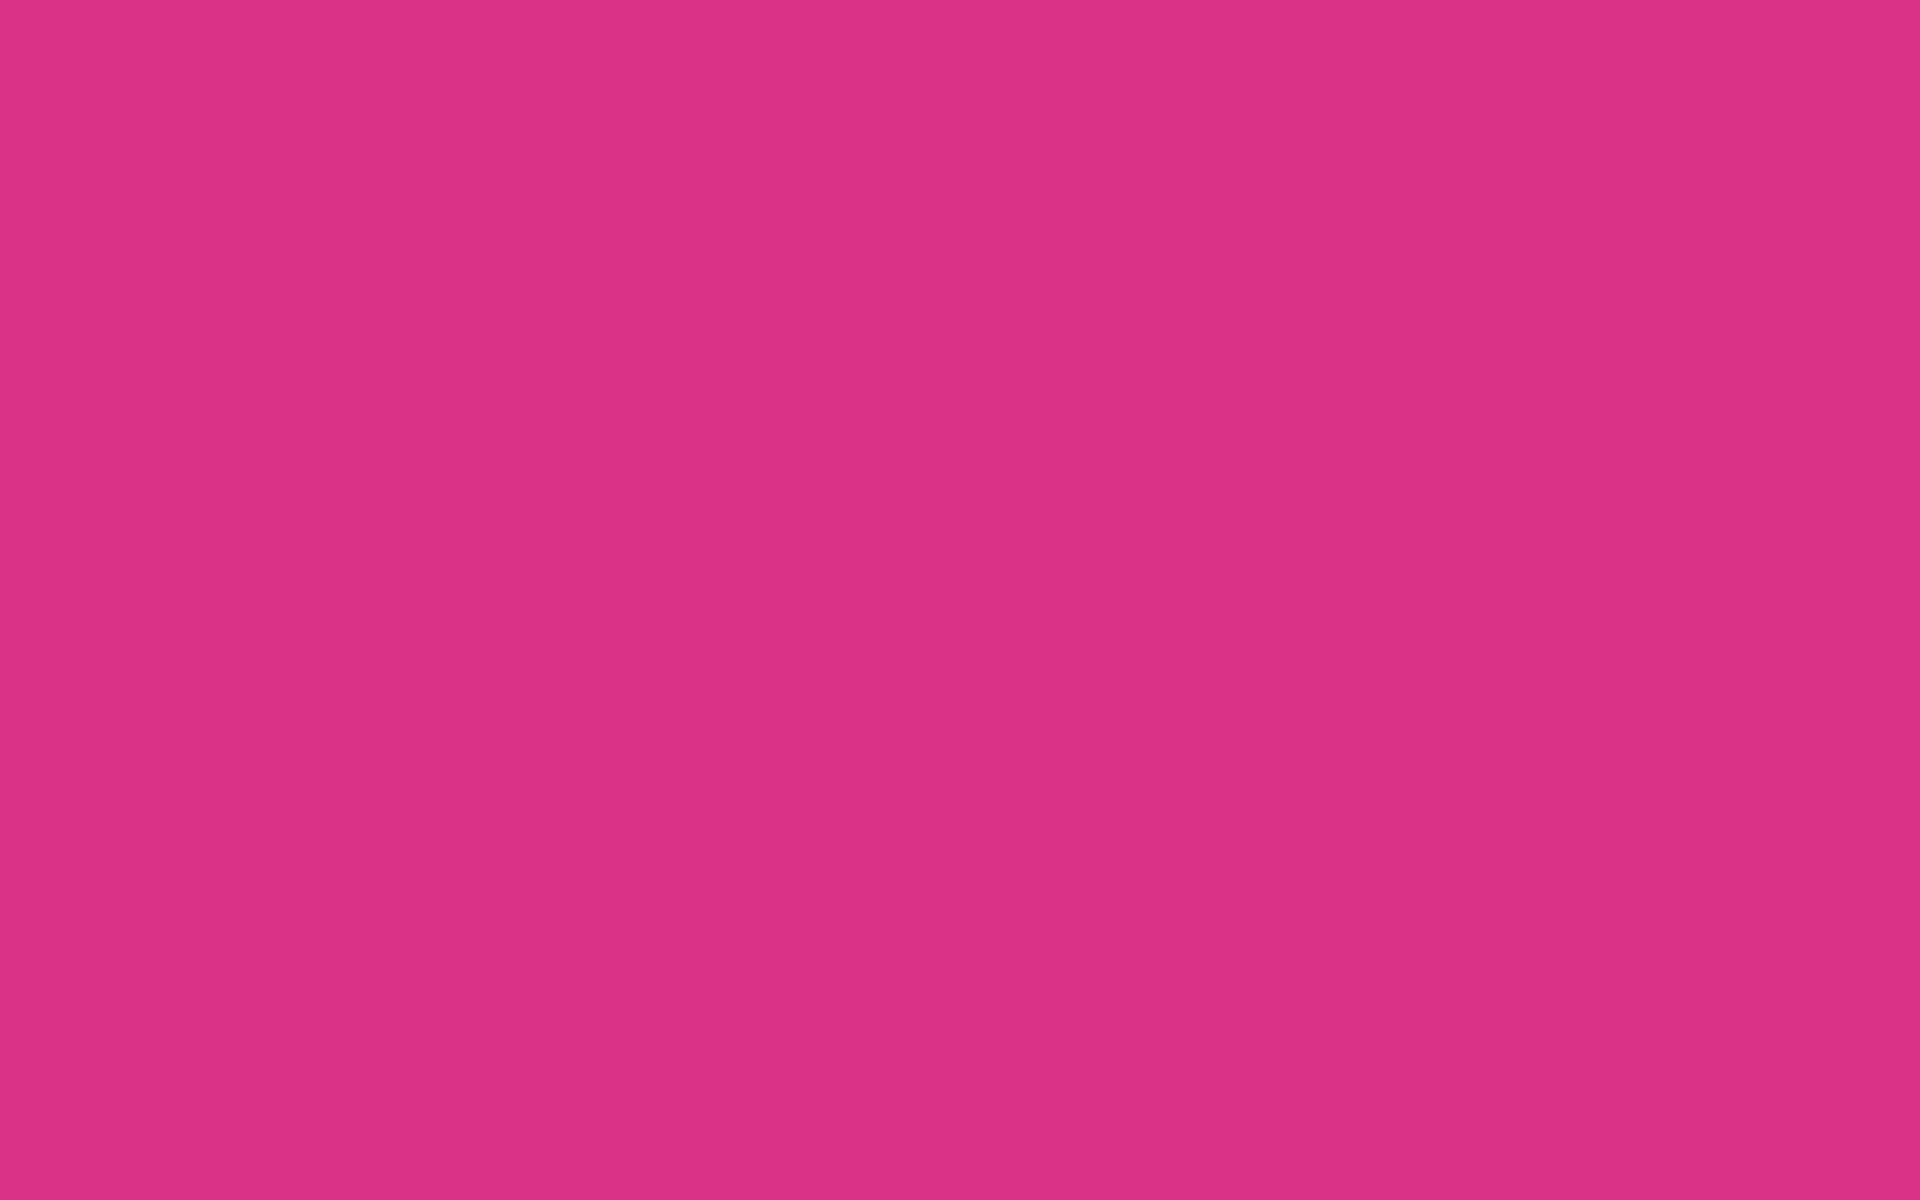 1920x1200 Deep Cerise Solid Color Background